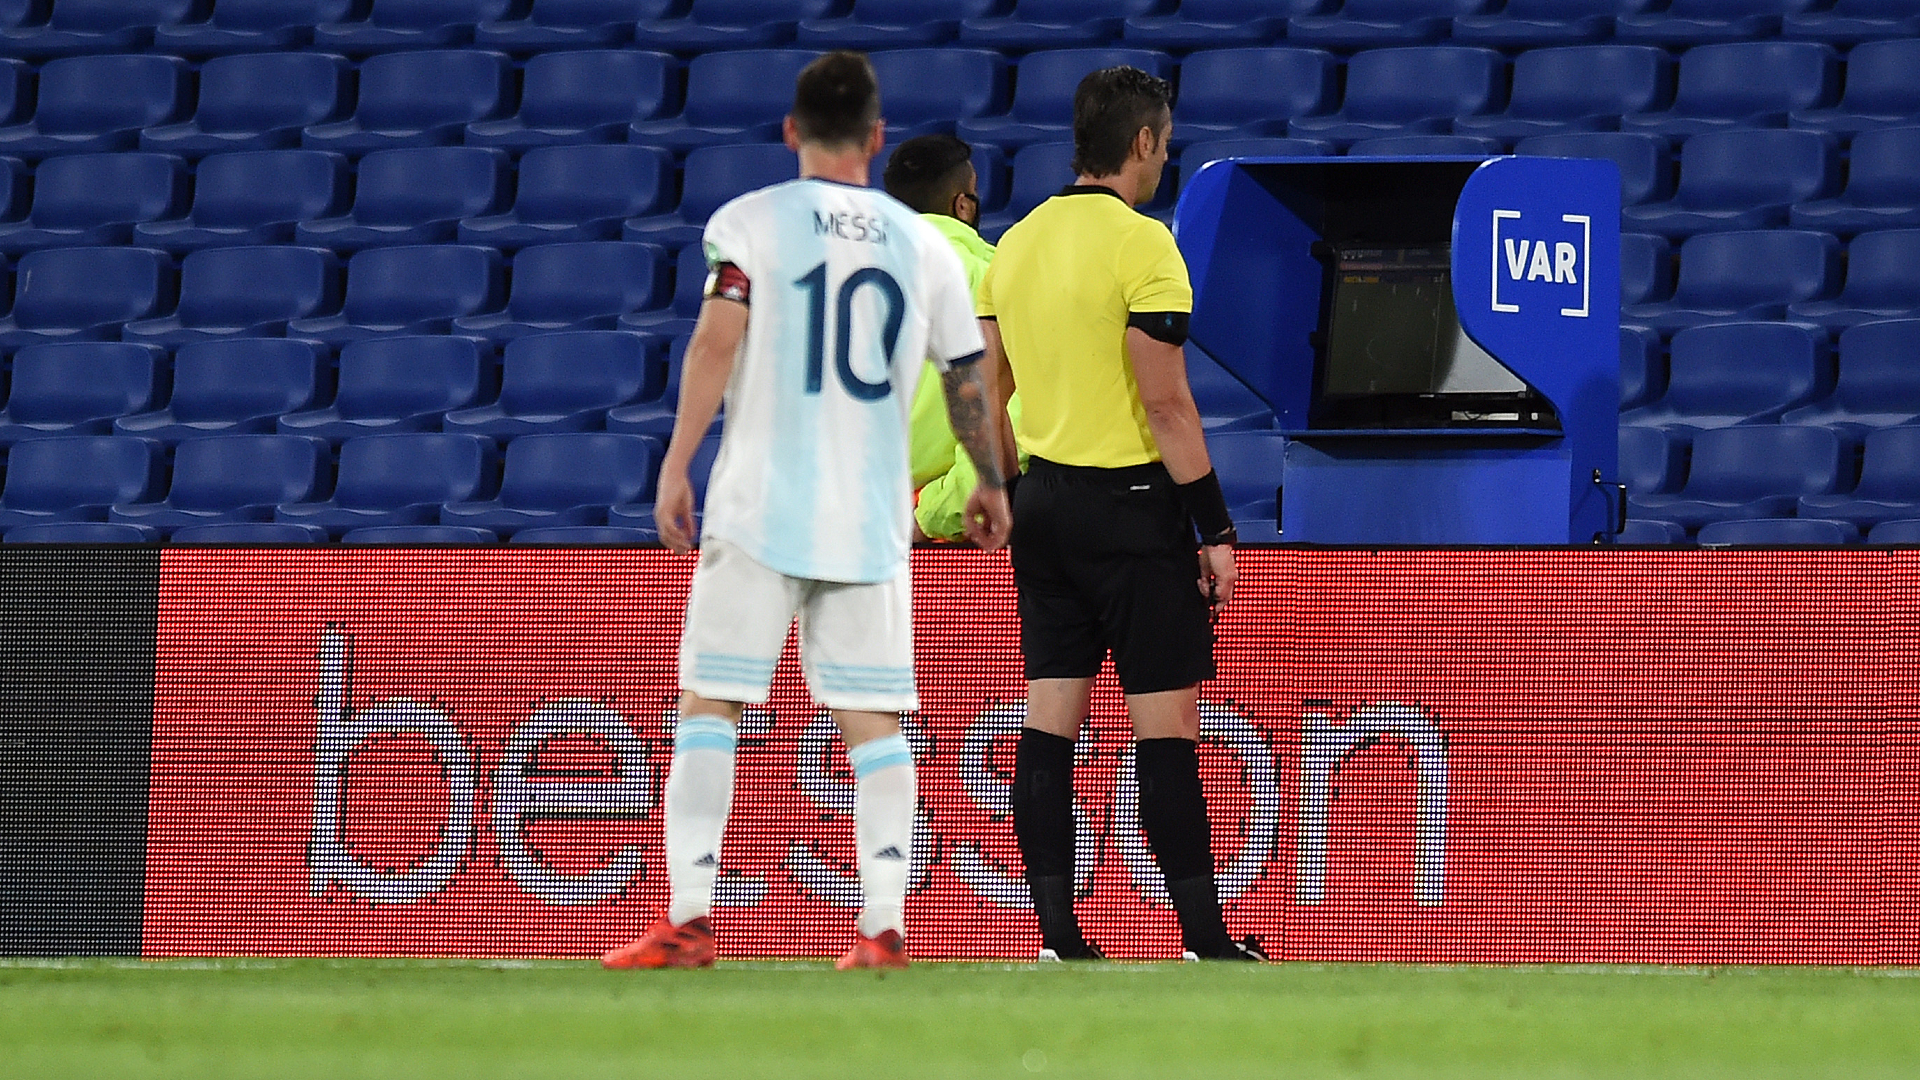 Scaloni calls for VAR consistency after Messi denied Argentina winner